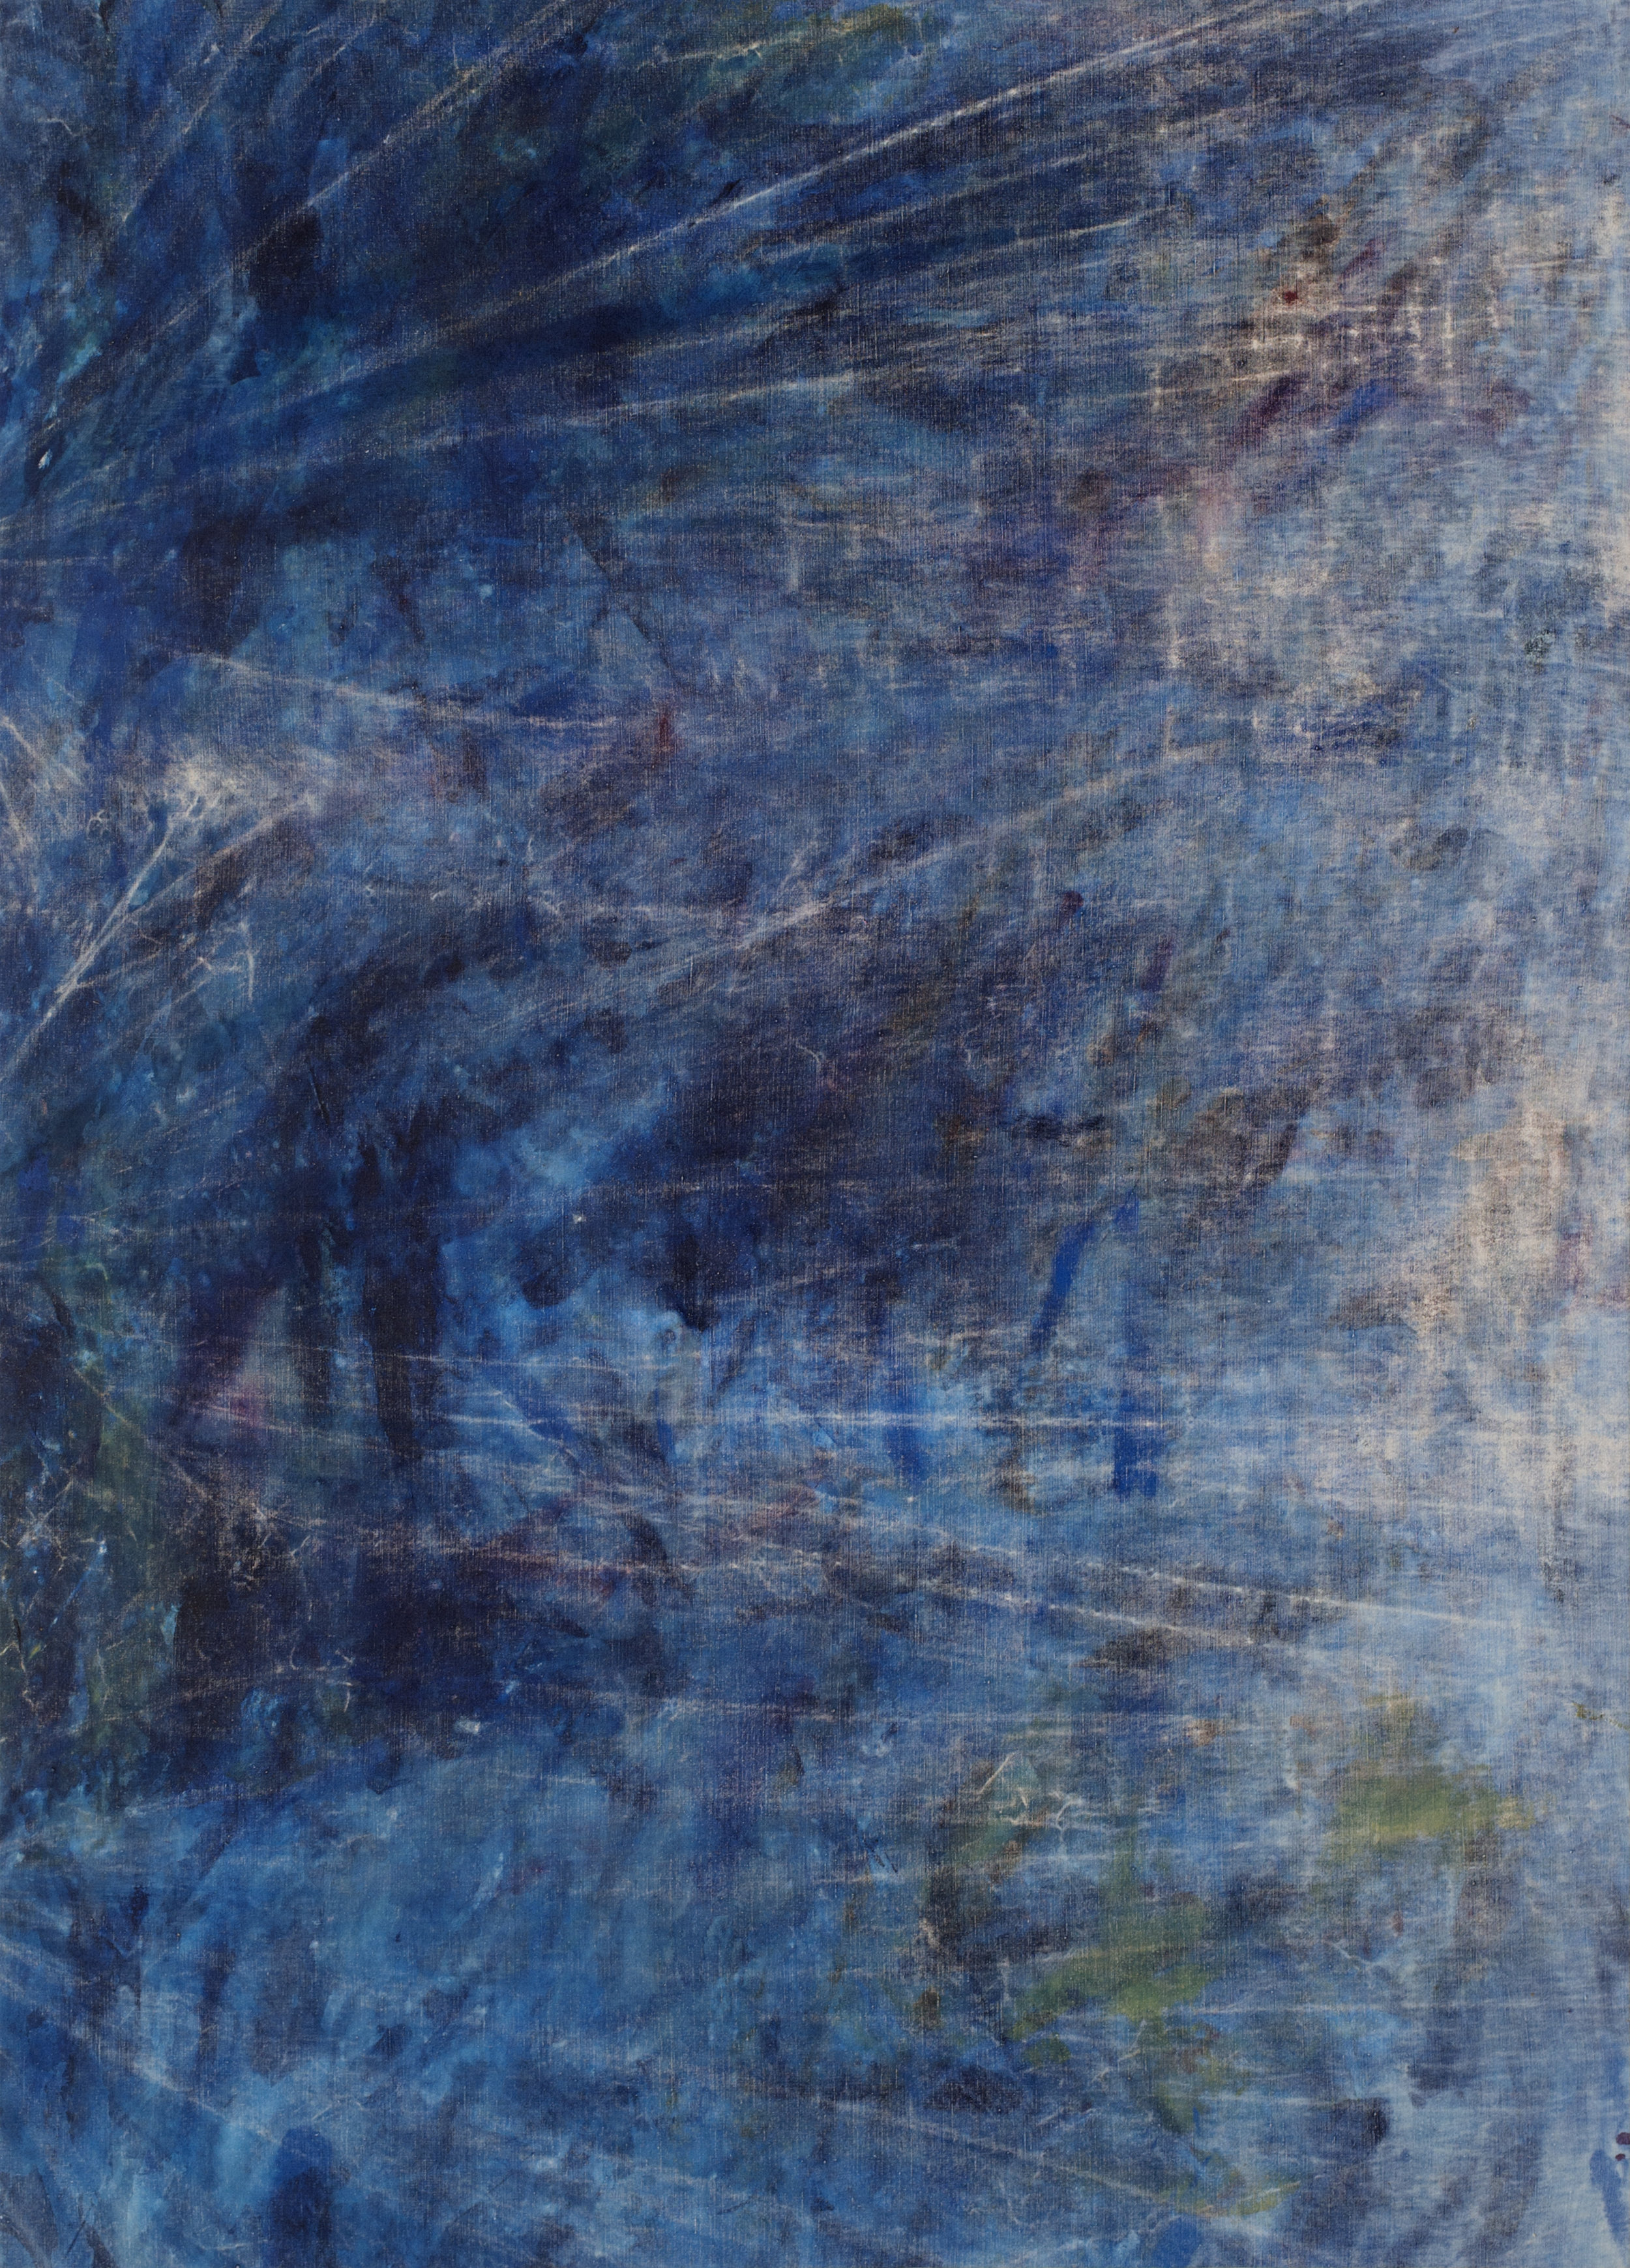 """rotational moments guided by a sand bar  2018 mixed media on linen 70 x 50""""   INQUIRE"""